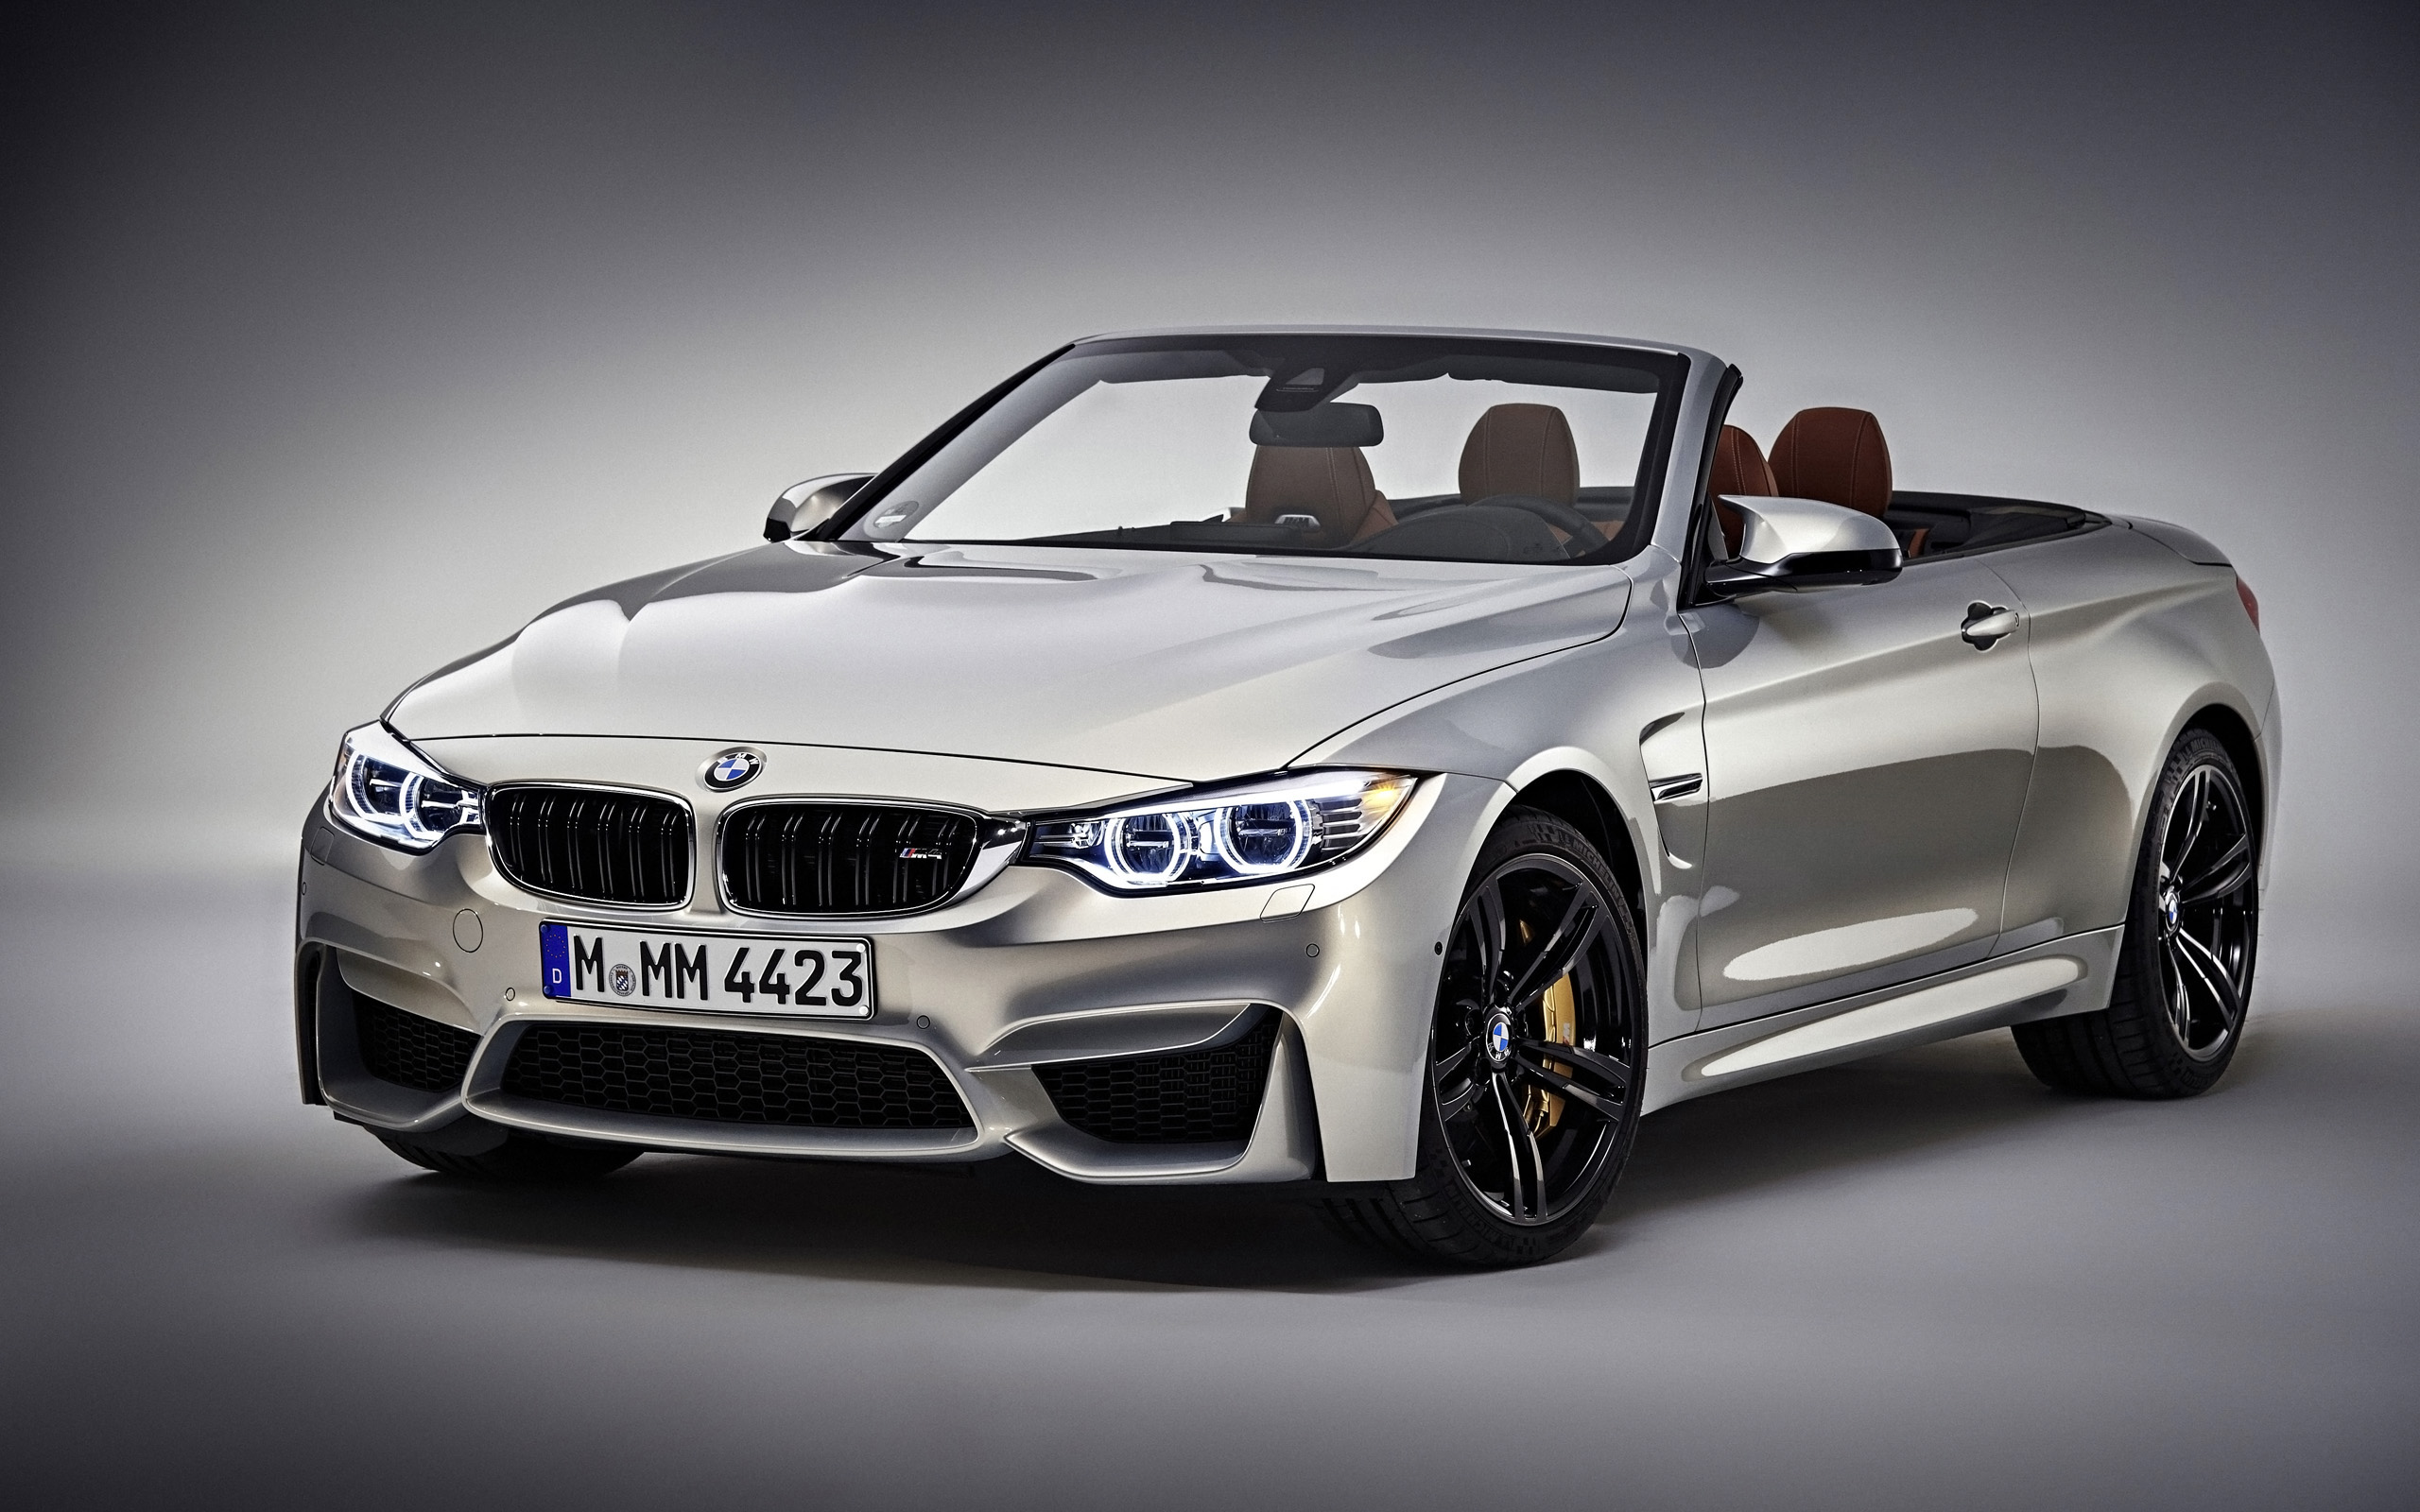 2015 bmw m4 convertible wallpaper hd car wallpapers id 4744. Black Bedroom Furniture Sets. Home Design Ideas